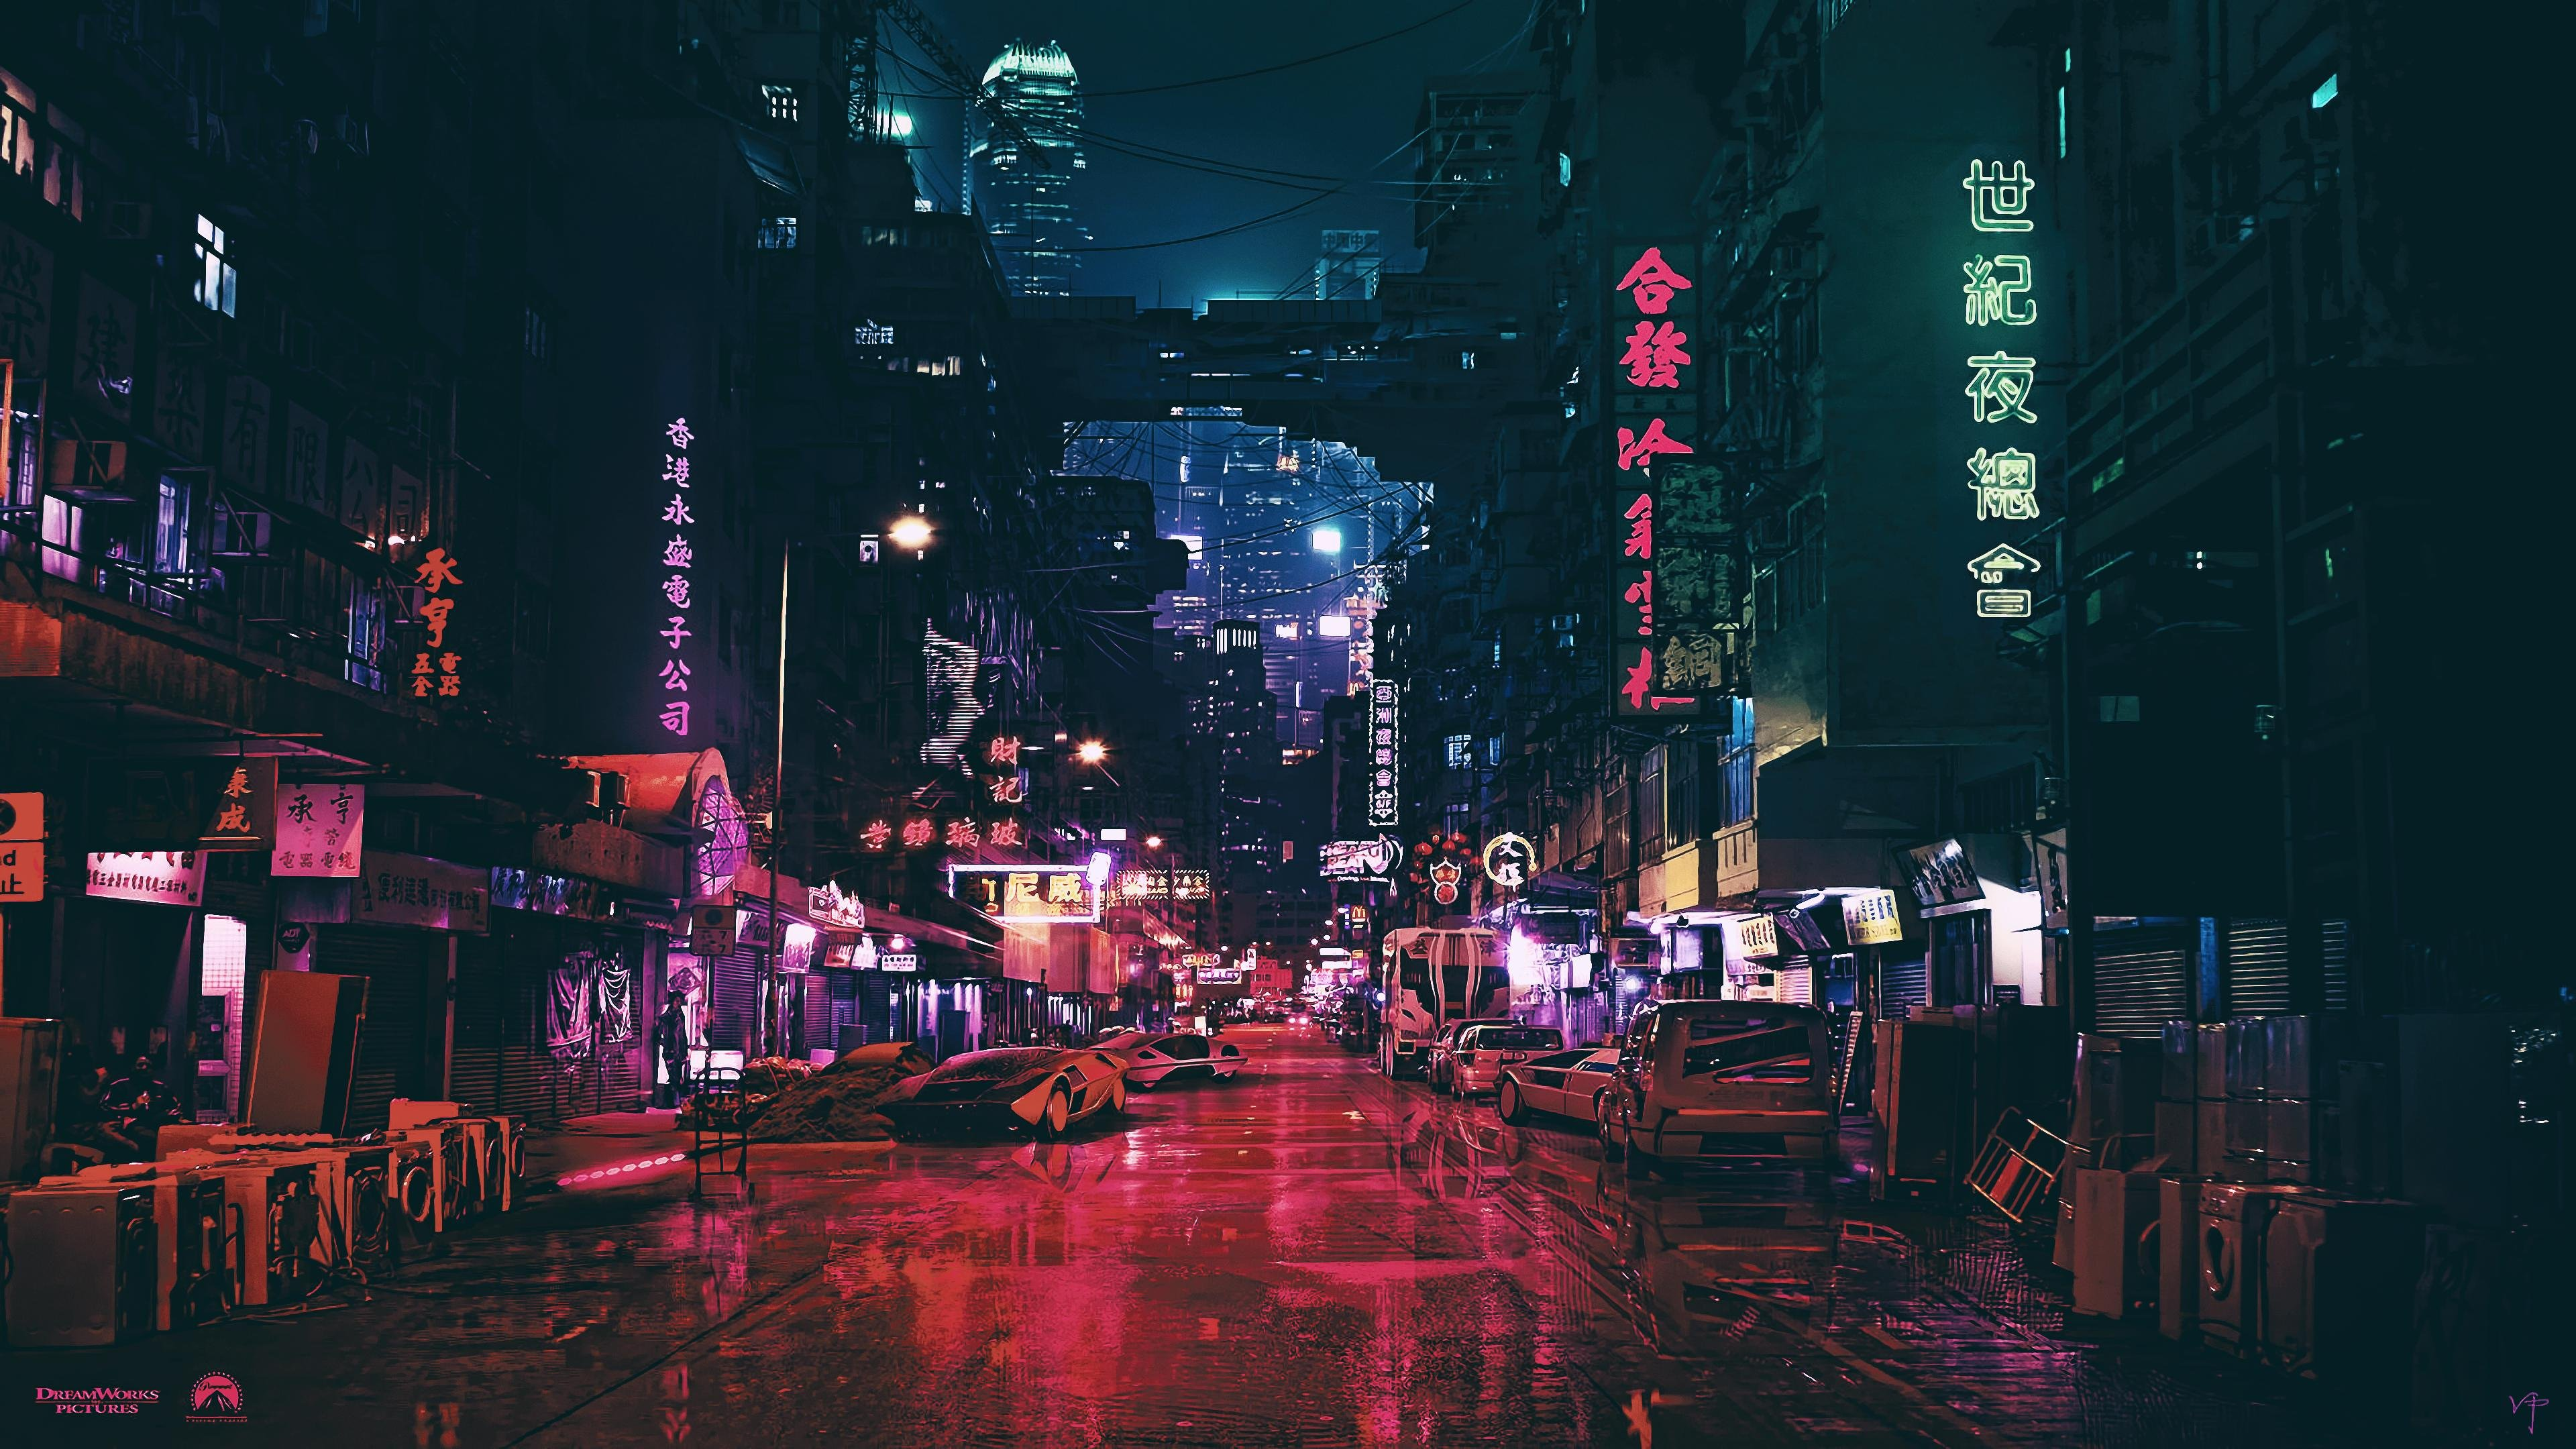 Best Wallpaper Night Ghost - ghost-in-the-shell-wallpaper  Photograph-498414.jpg